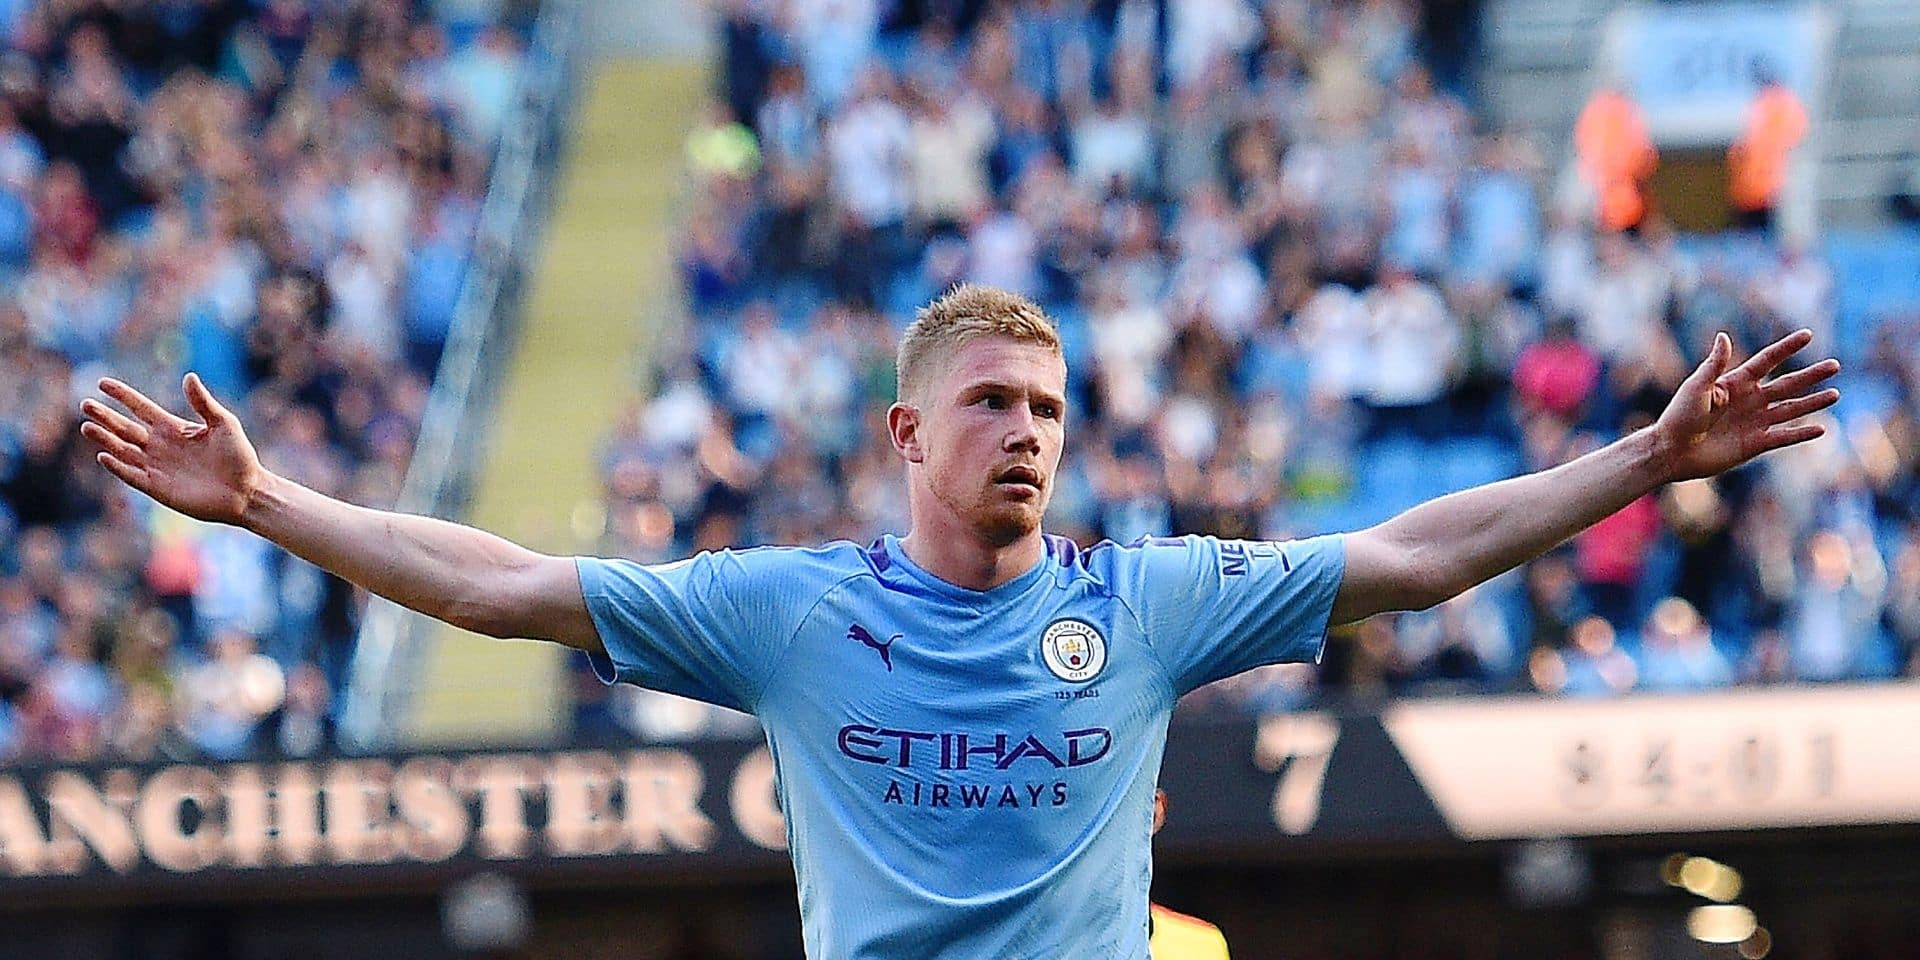 Manchester City's Belgian midfielder Kevin De Bruyne celebrates scoring his team's eighth goal during the English Premier League football match between Manchester City and Watford at the Etihad Stadium in Manchester, north west England, on September 21, 2019. (Photo by Oli SCARFF / AFP) / RESTRICTED TO EDITORIAL USE. No use with unauthorized audio, video, data, fixture lists, club/league logos or 'live' services. Online in-match use limited to 120 images. An additional 40 images may be used in extra time. No video emulation. Social media in-match use limited to 120 images. An additional 40 images may be used in extra time. No use in betting publications, games or single club/league/player publications. /